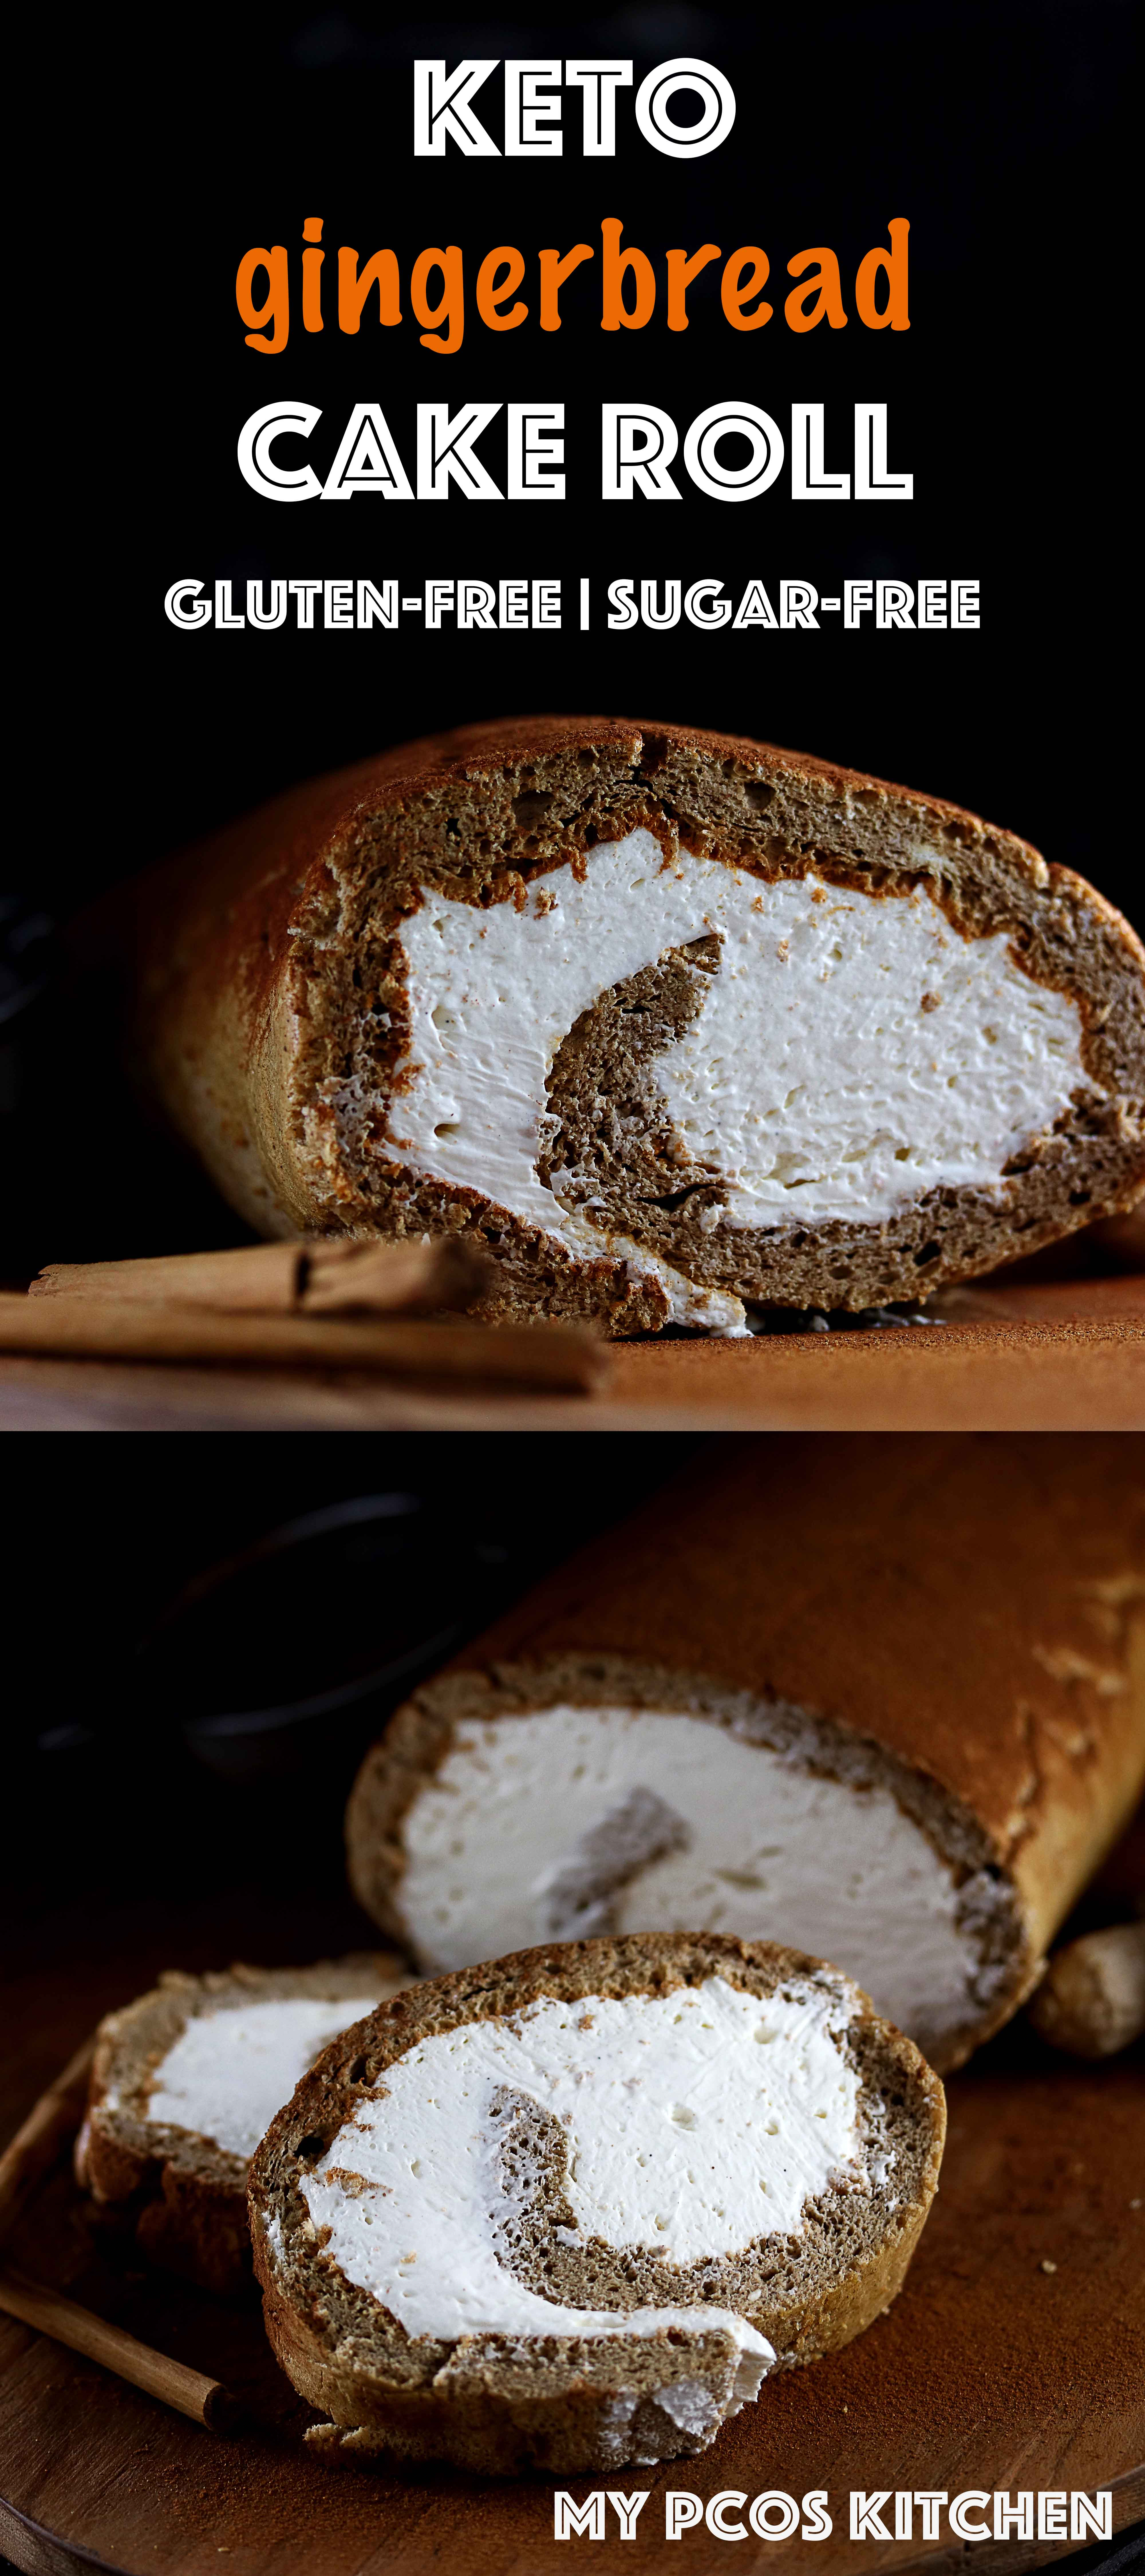 Keto Gingerbread Cake Roll - My PCOS Kitchen - A delicious gluten-free and sugar-free cake roll filled with a cream cheese frosting. #keto #christmas #lowcarb #glutenfree #sugarfree #grainfree #dessert